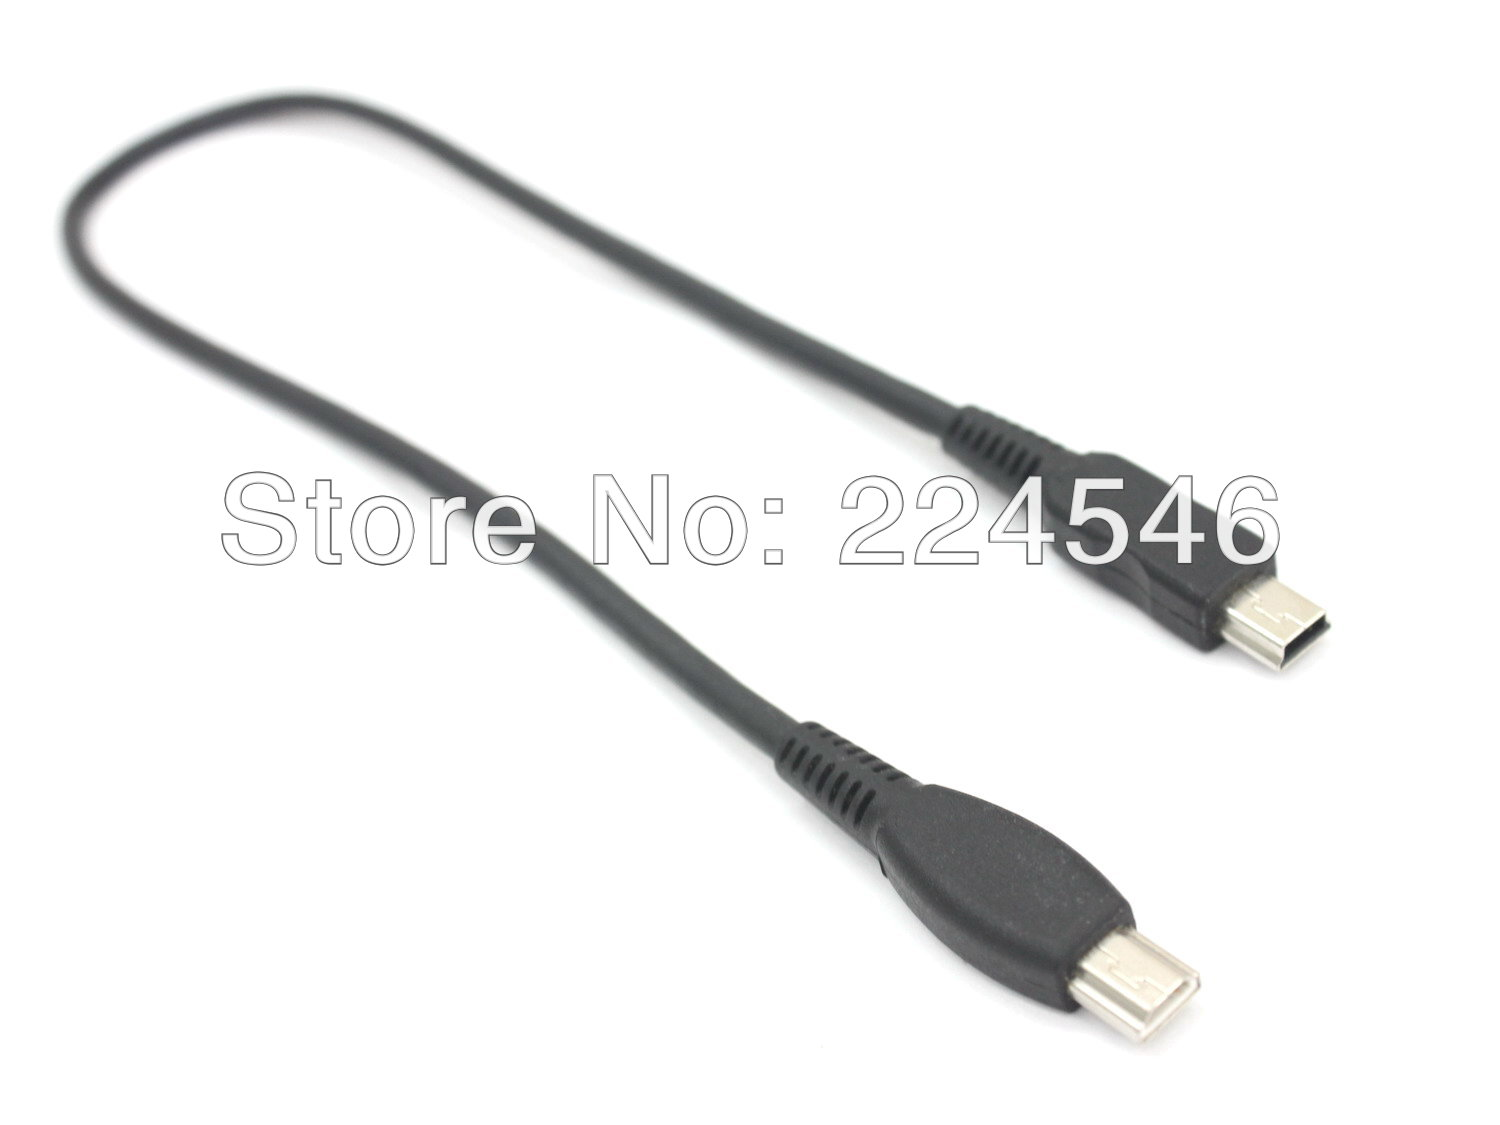 Mini USB MINI-A TO MINI-B 5pin USB cable for TI-84 Plus TI-89 Titanium Graphic S3 39cm чехол для ноутбука 14 printio собаки